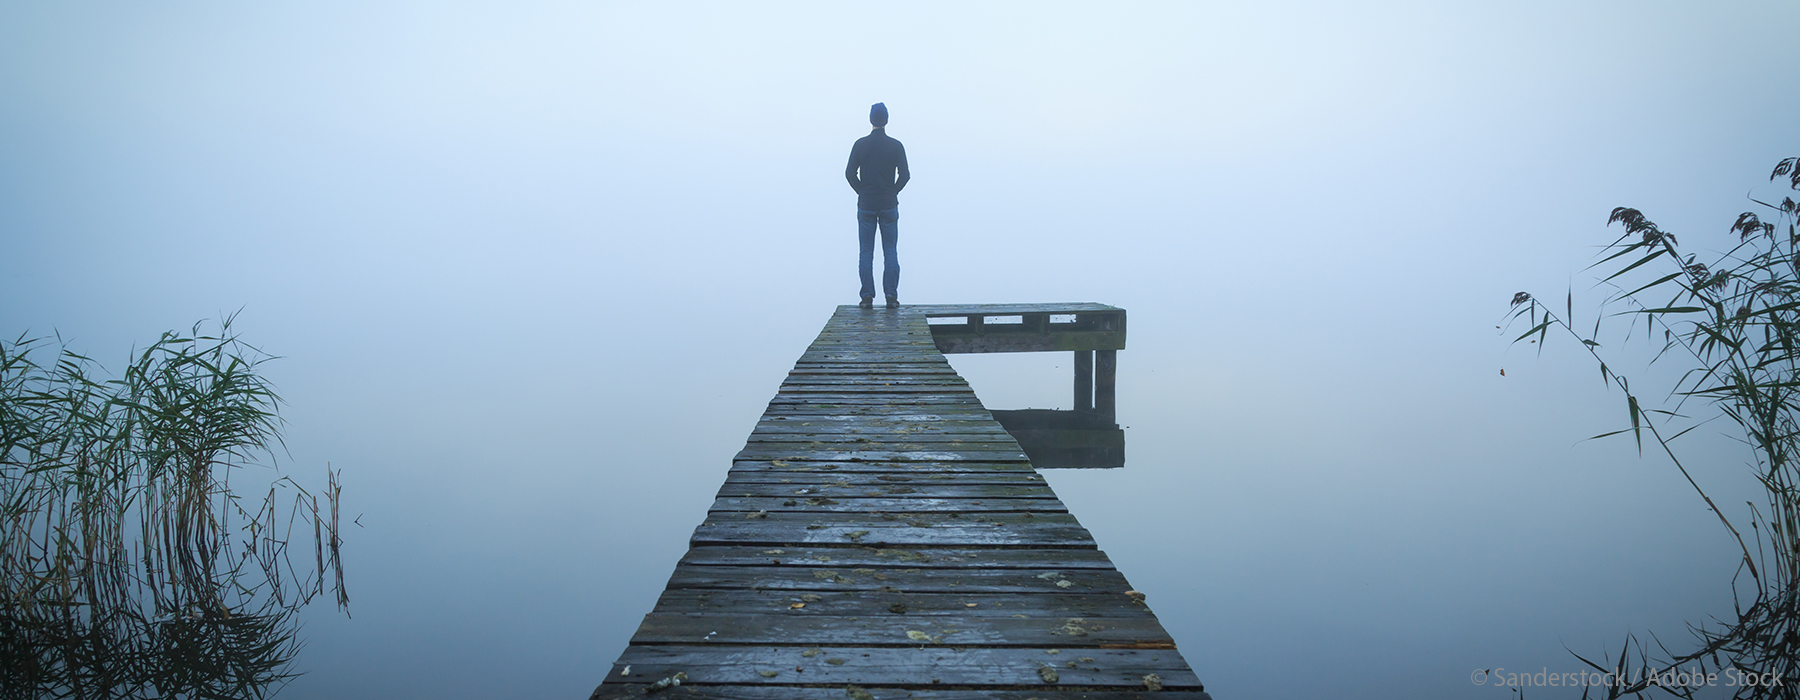 Image of man standing on pier